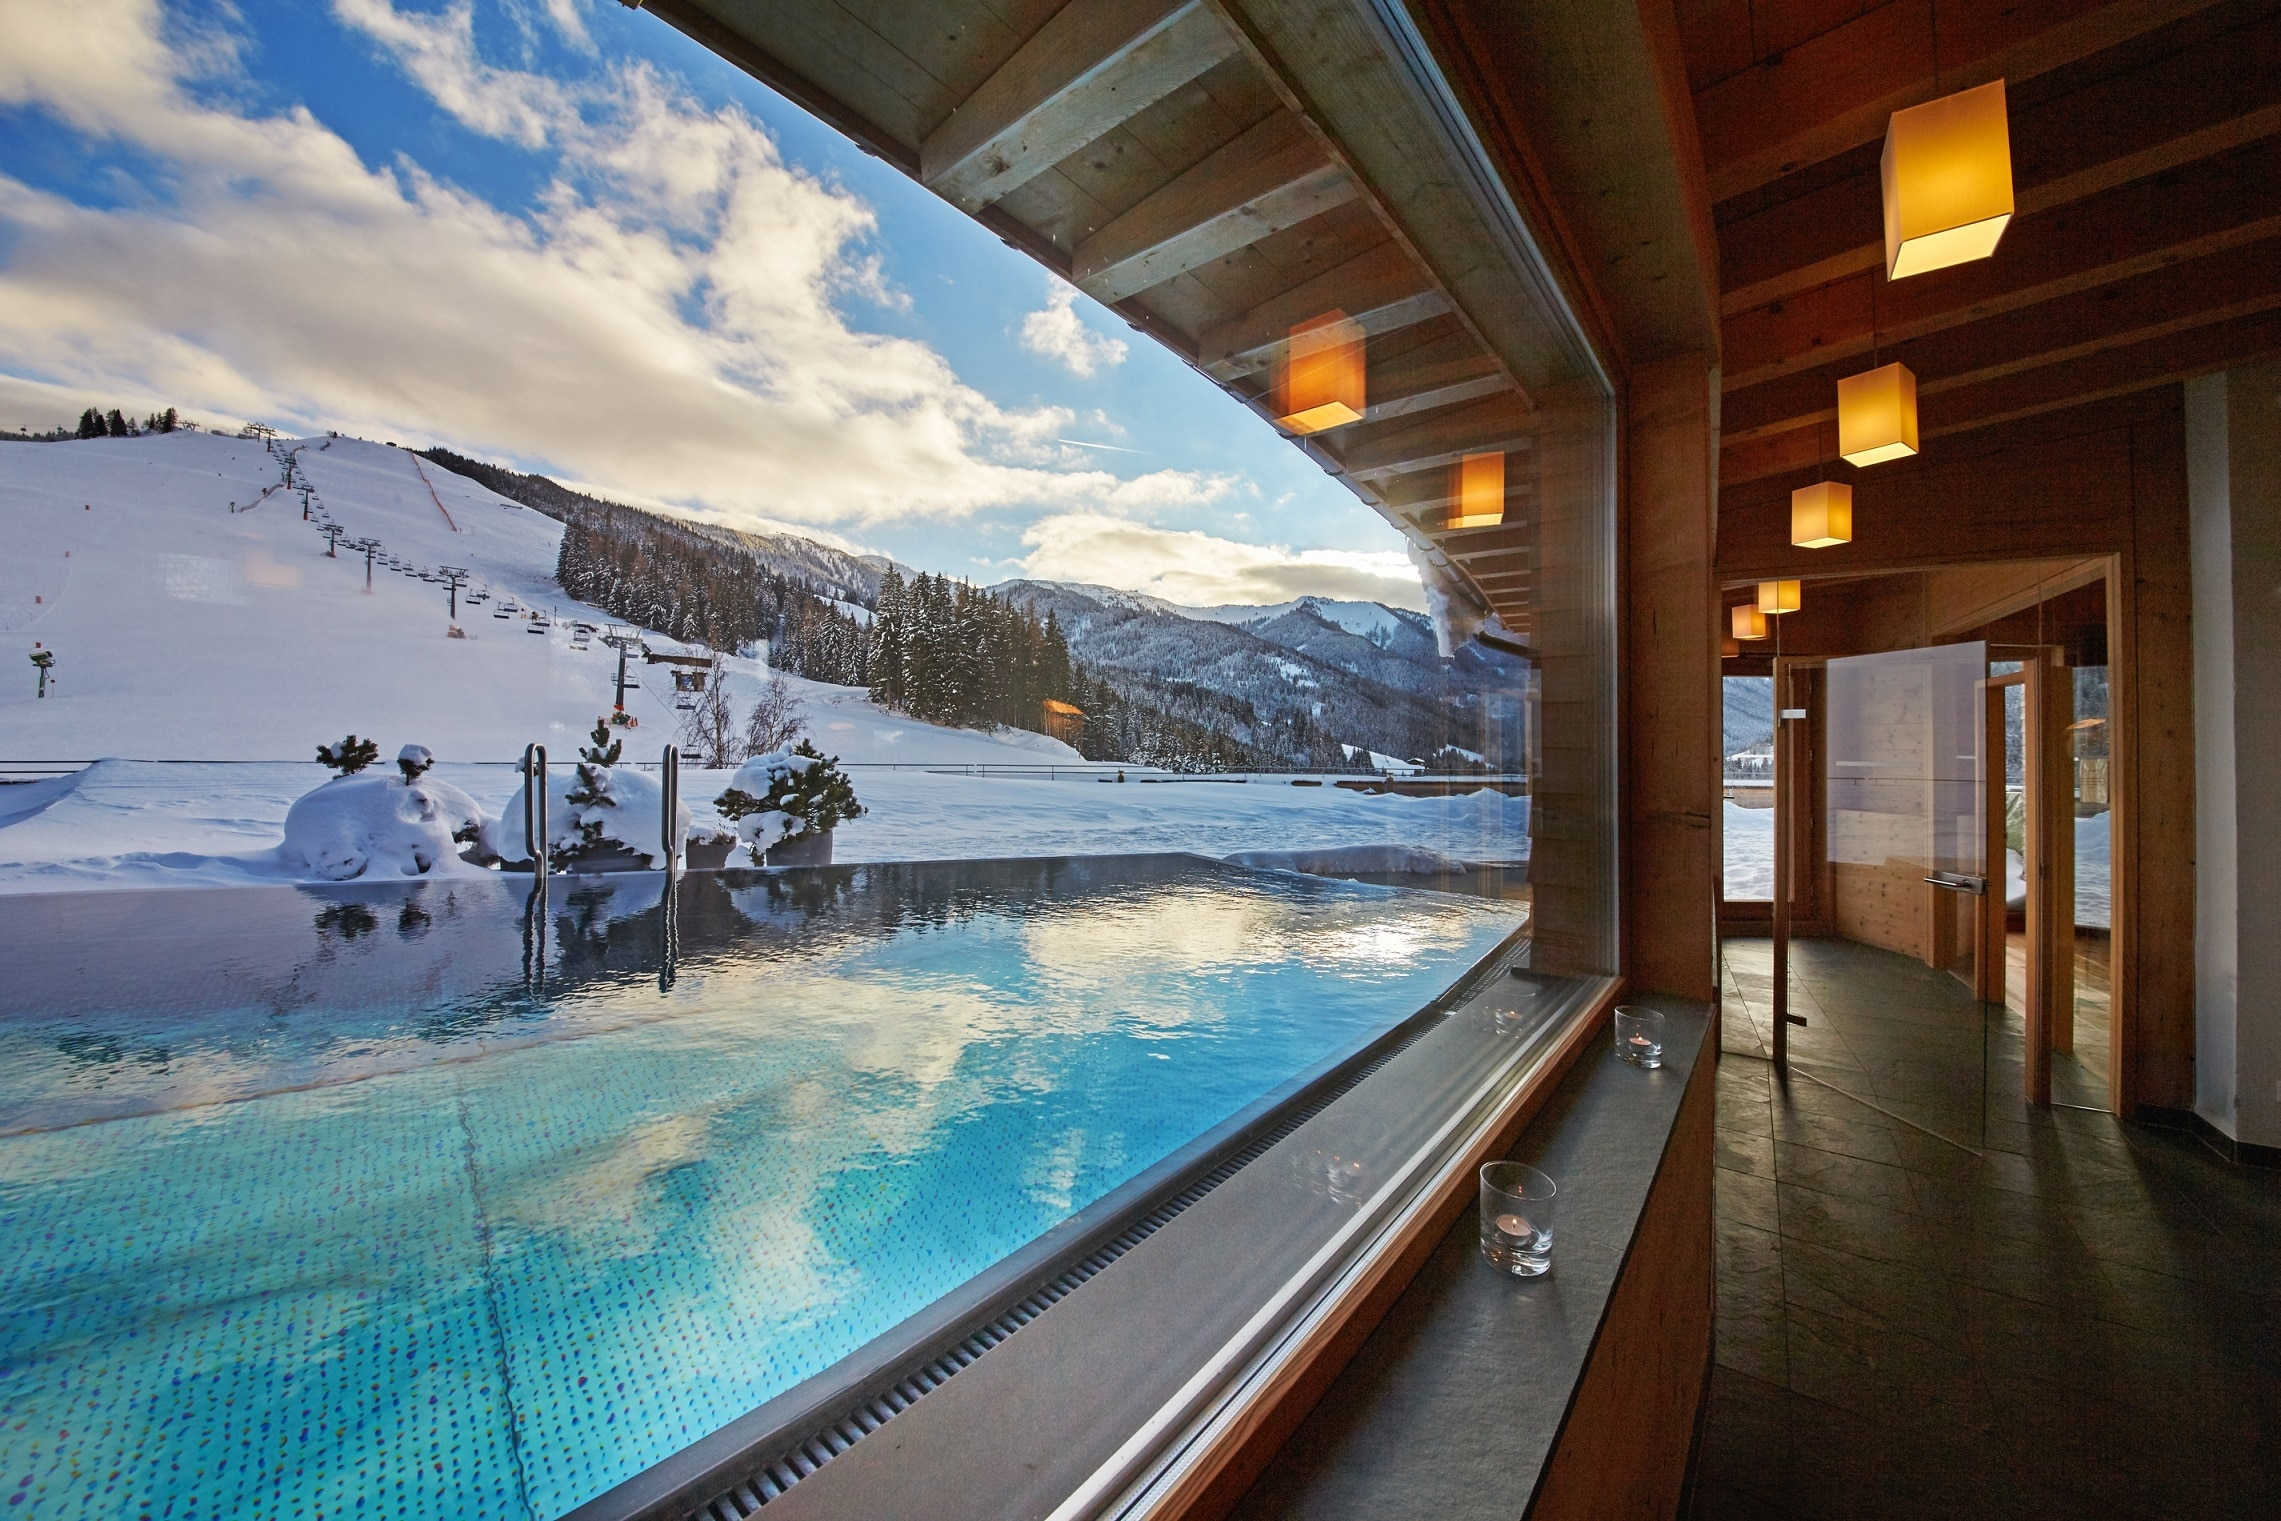 Blick ins Schwimmbad Holzhotel Forsthofalm in Leogang